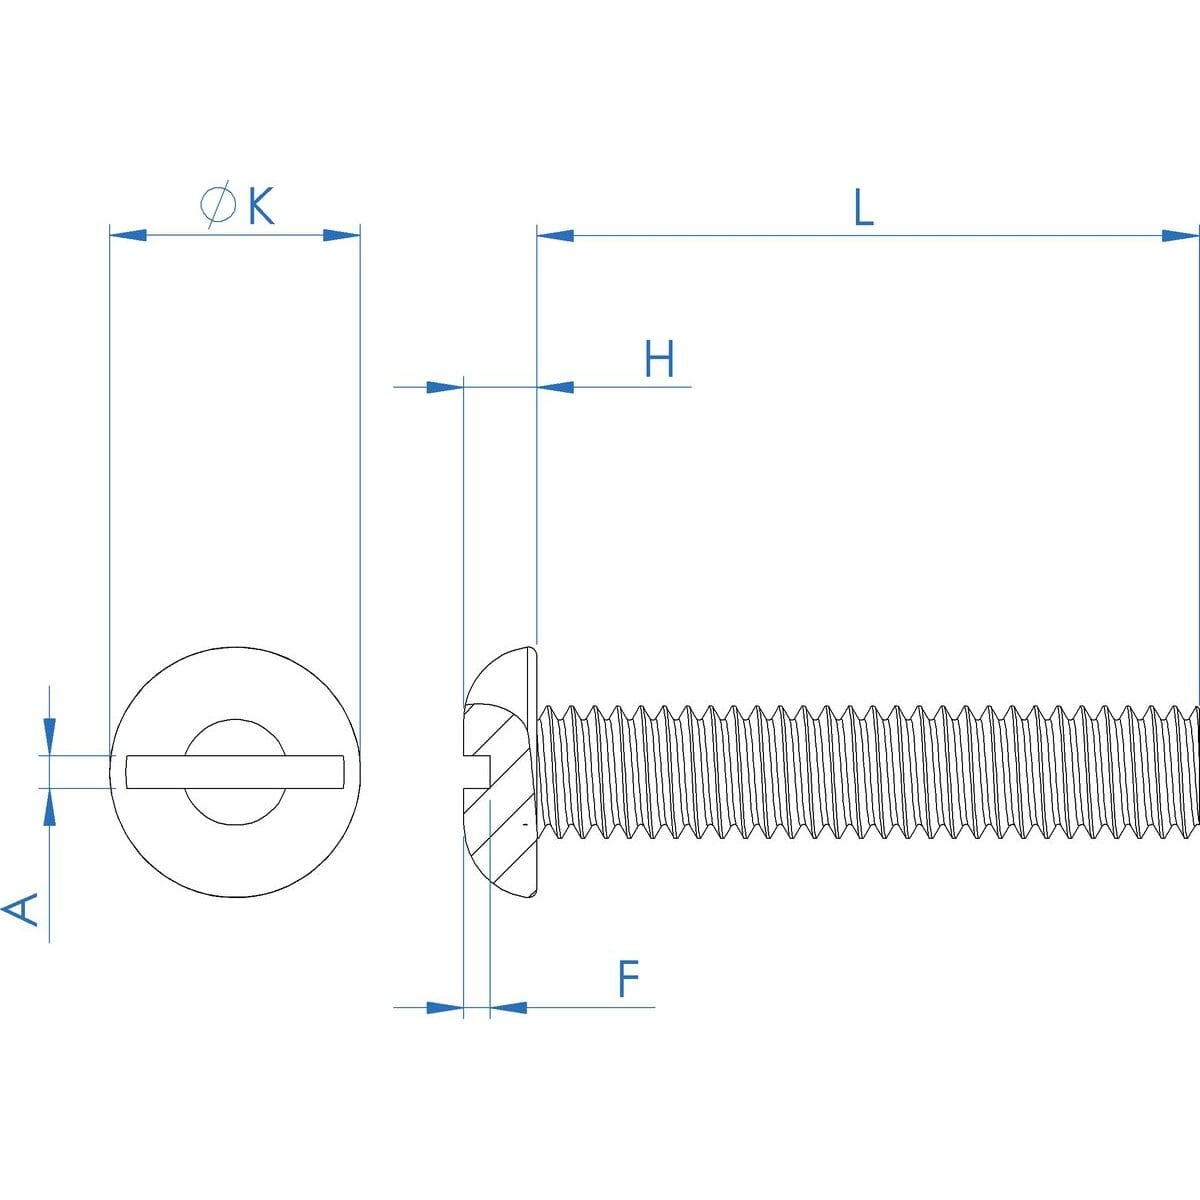 1/4-28 UNF x 1.1/4 inch Slotted Round Screws (ANSI B18.6.3) - Stainless Steel (A2) Drawing